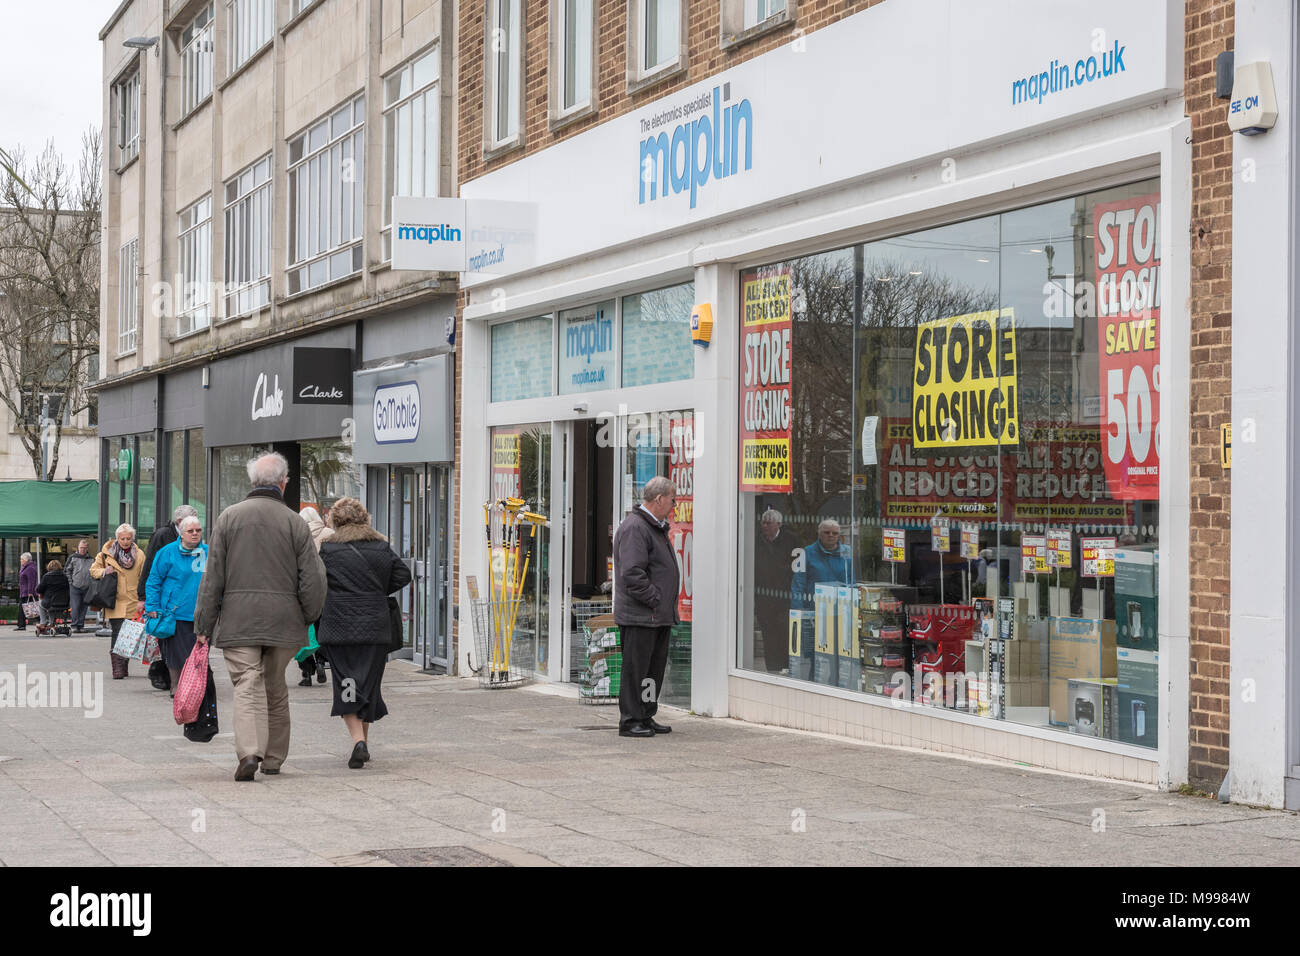 Maplin Plymouth after announcing all stores closing. Metaphor - struggling retailers, high street crisis, company administration, death of high street Stock Photo